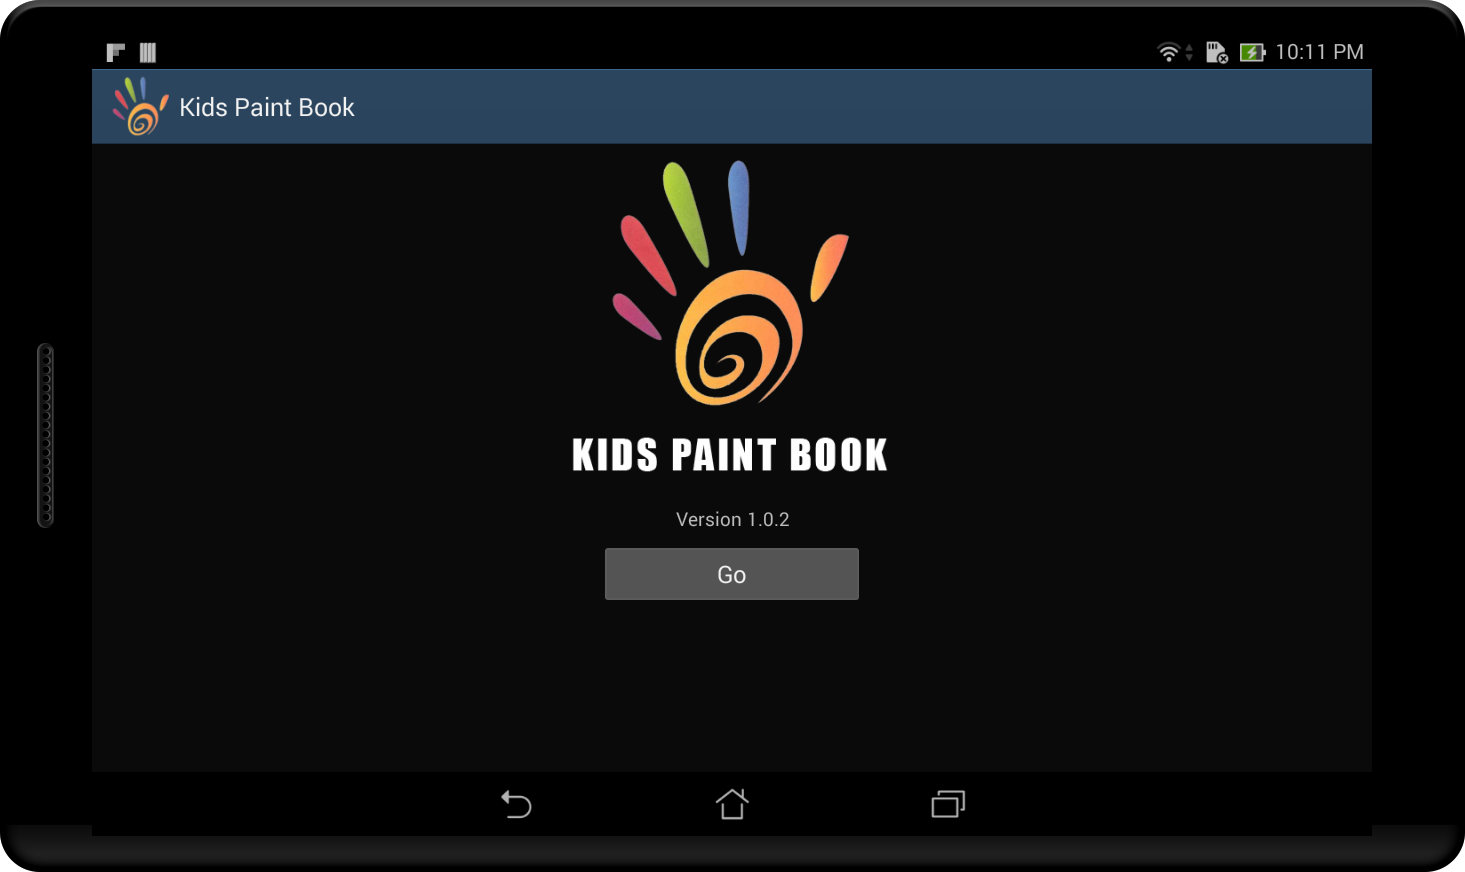 kids paint book screenshot - Kids Paint Book